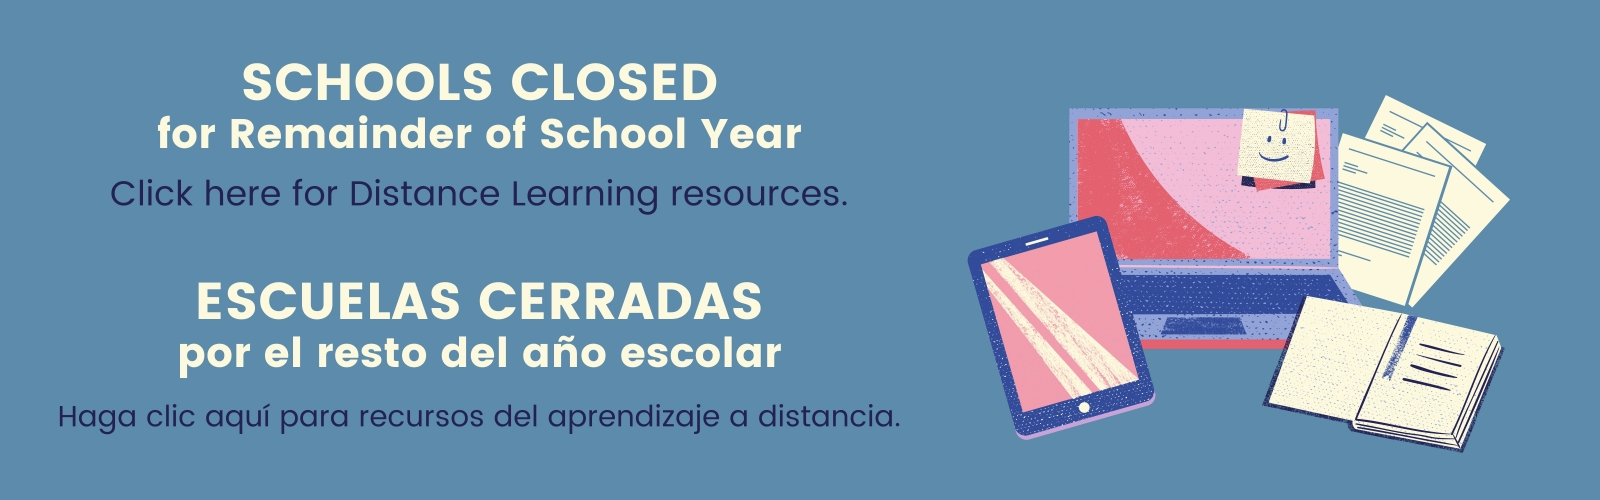 CSD schools closed remainder for 2019-20 school year